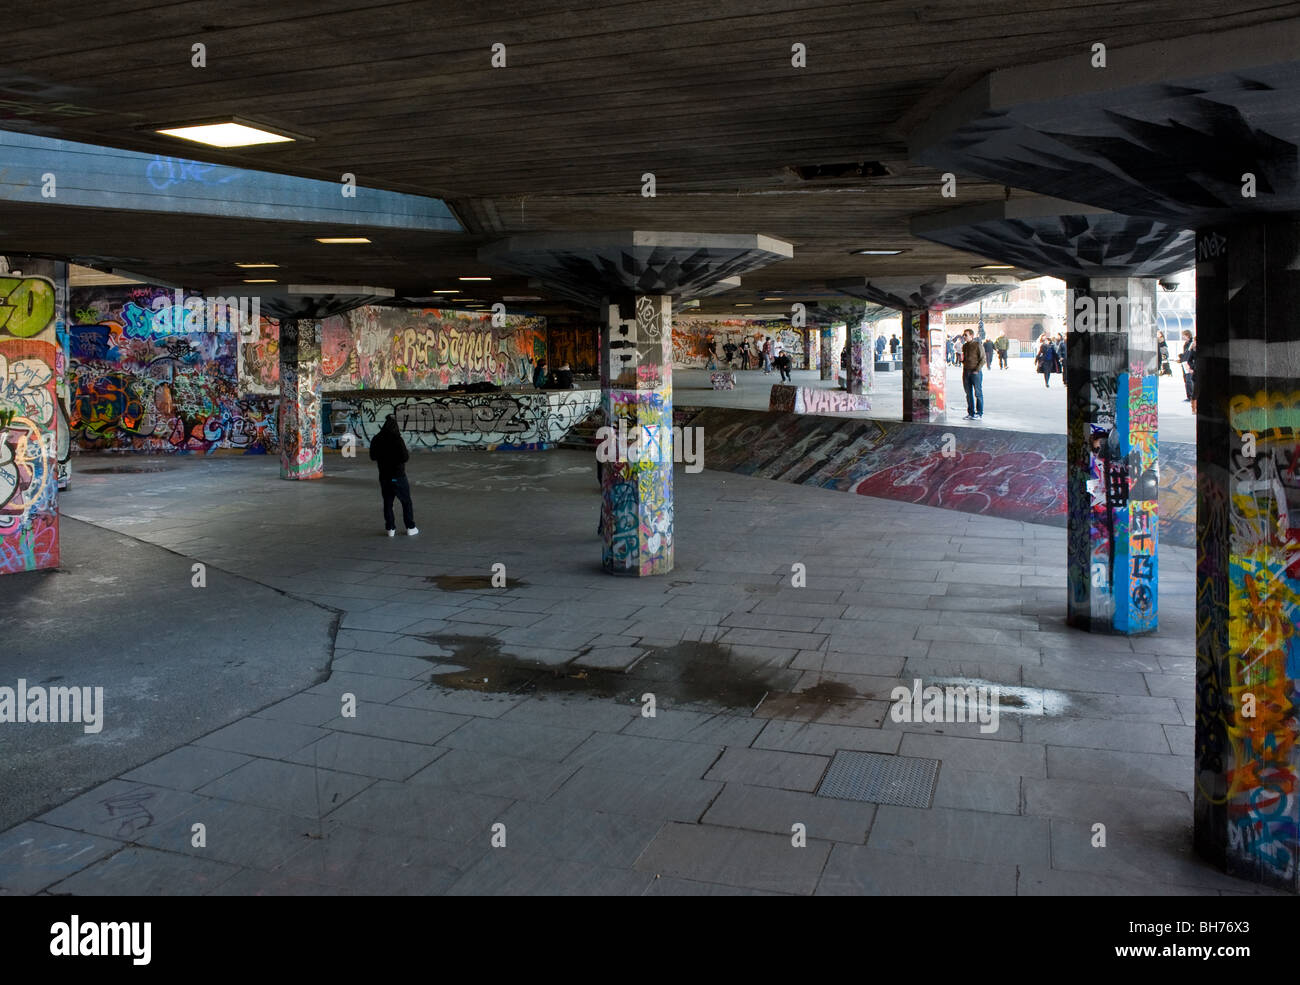 Graffiti covering the walls of the under-croft skateboarding area of the South Bank.  Photo by Gordon Scammell - Stock Image